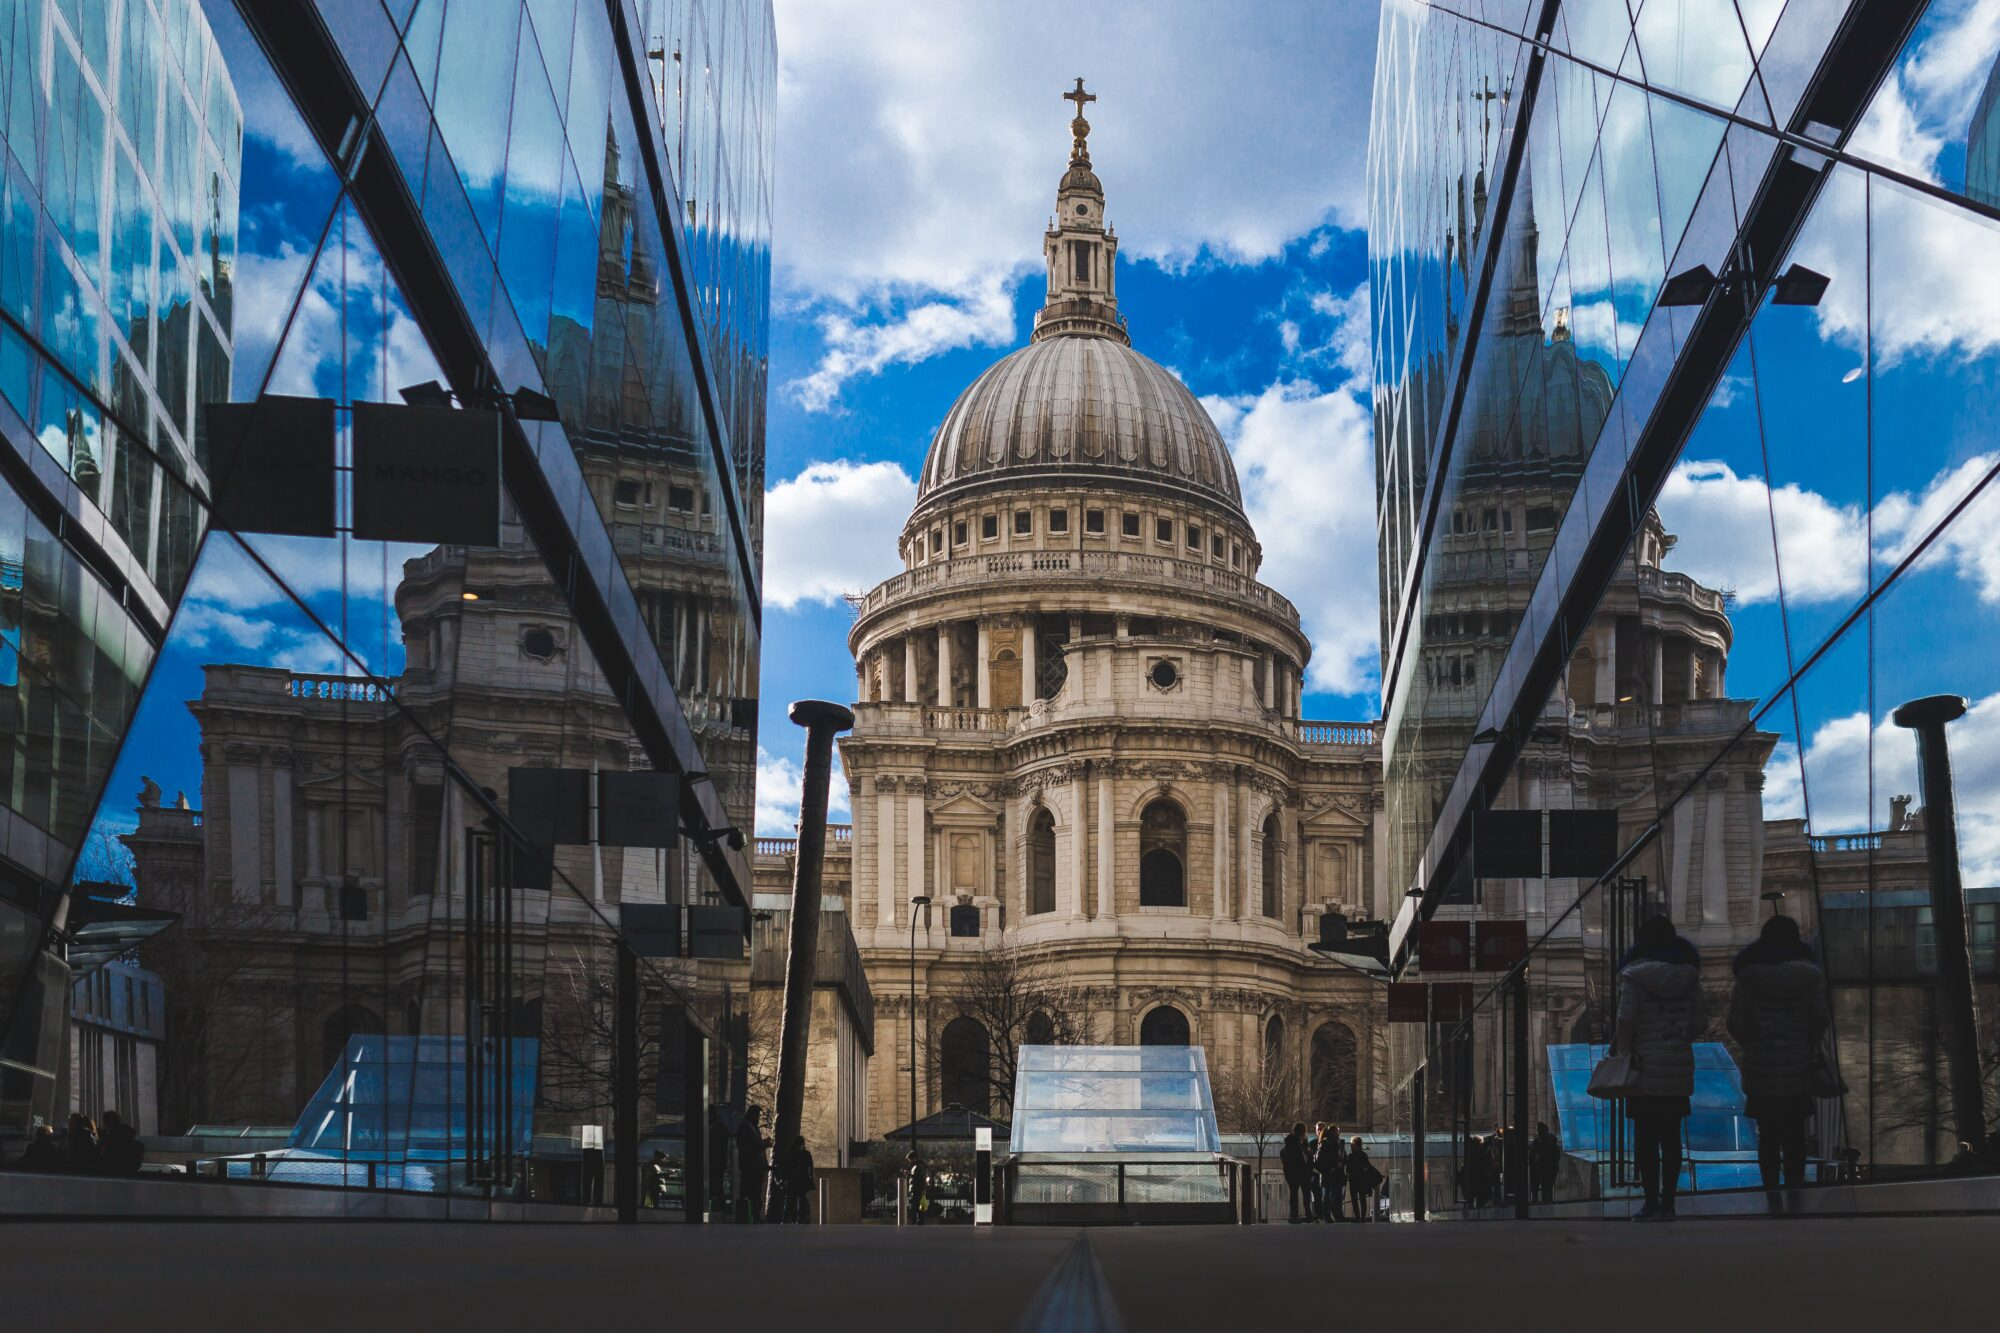 Stadtteile London - St. Paul's Cathedral